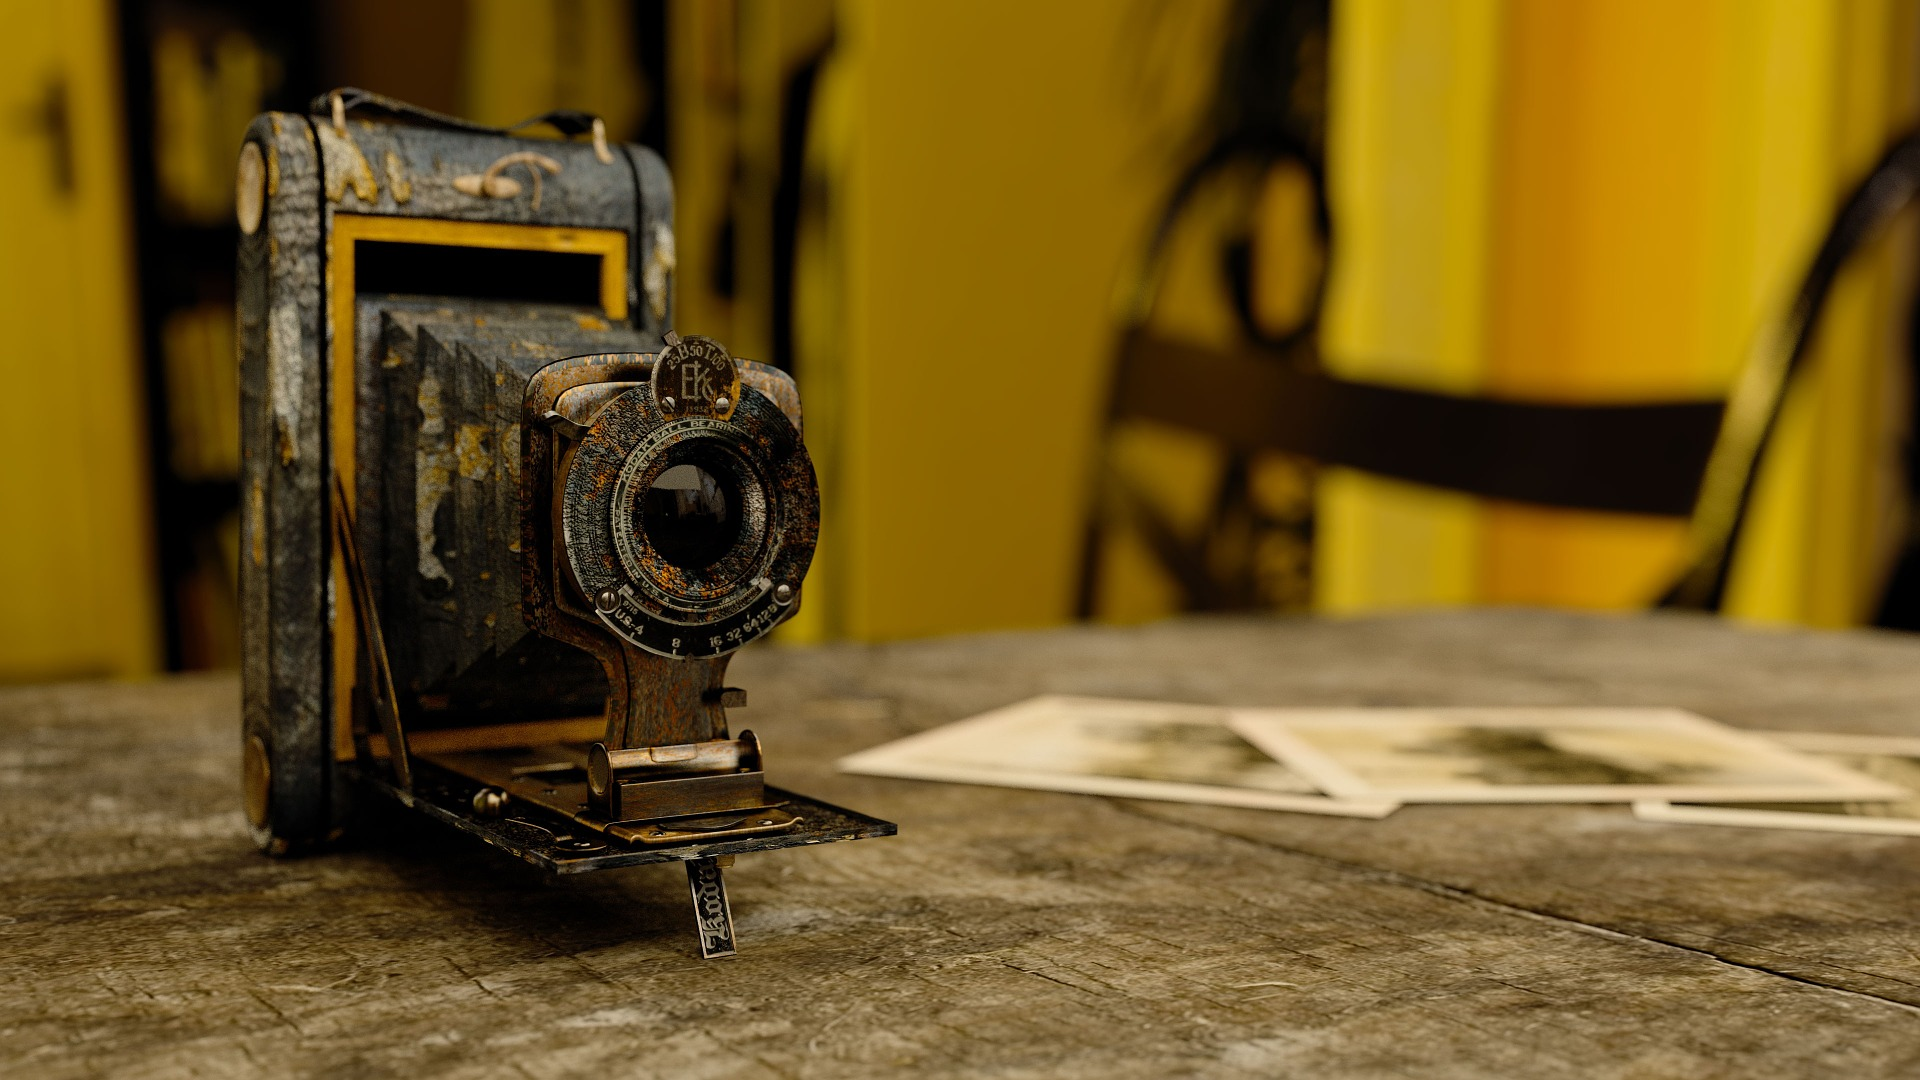 pic of vintage camera